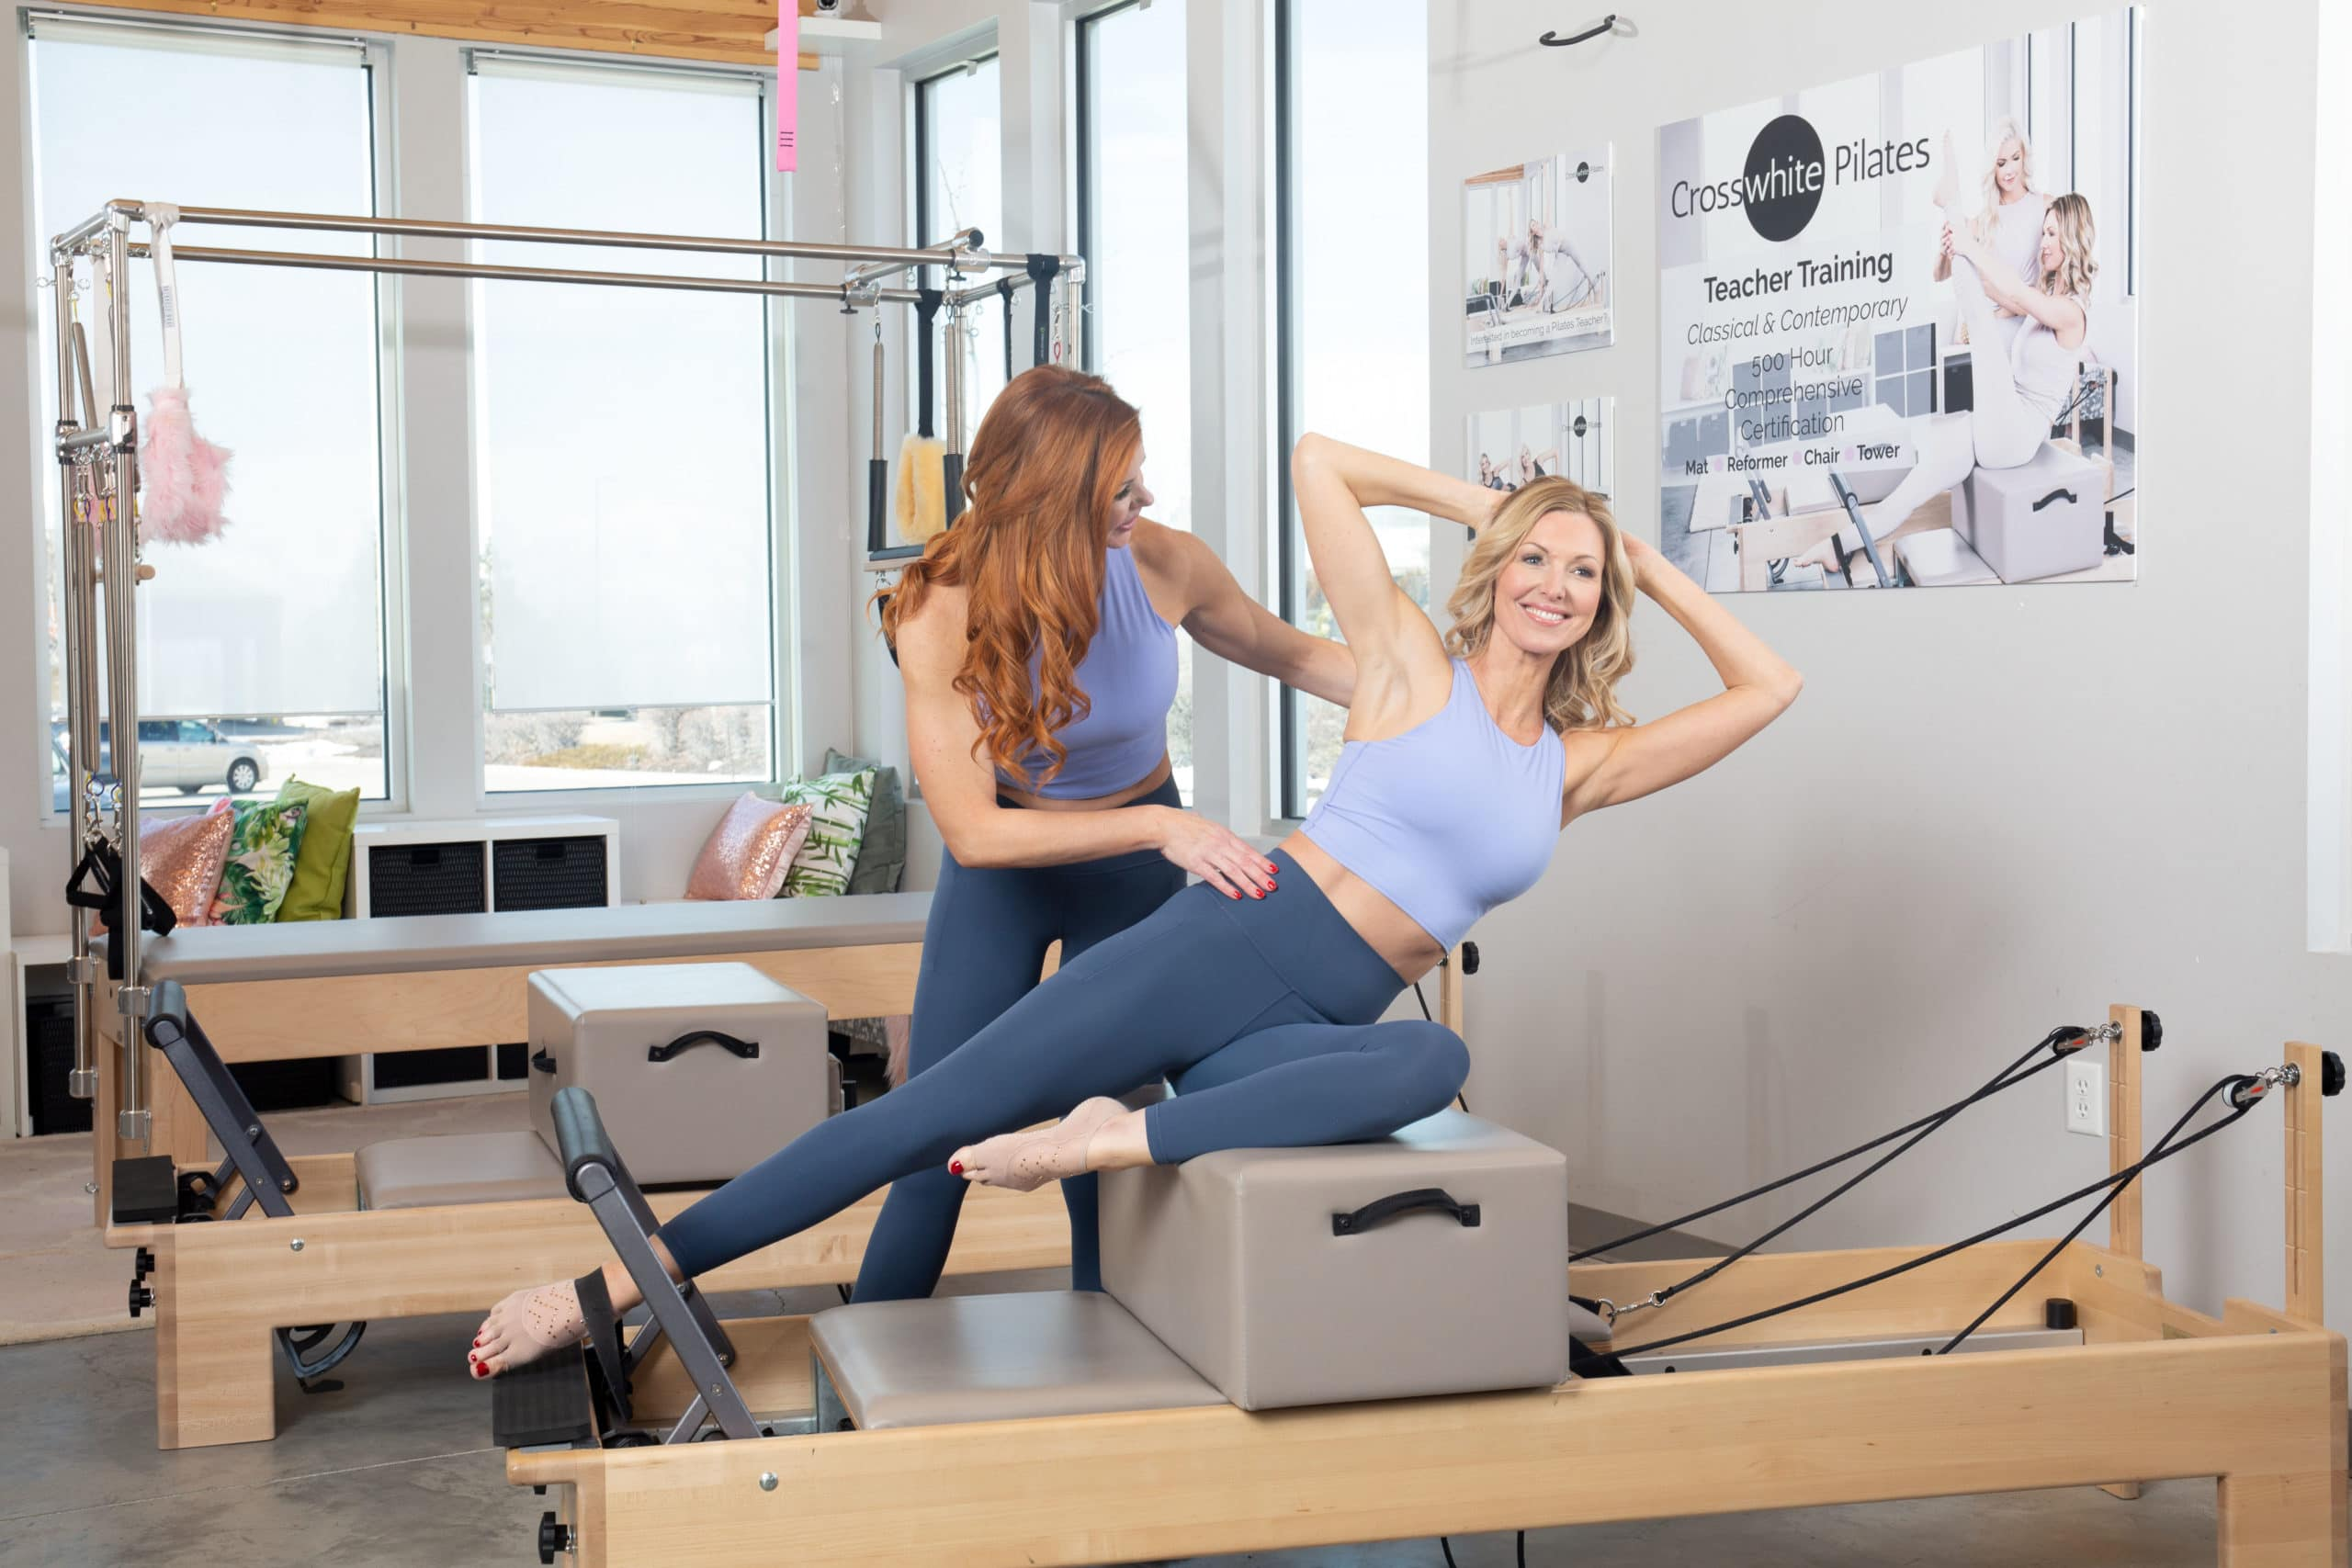 What to expect at your first reformer Pilates class